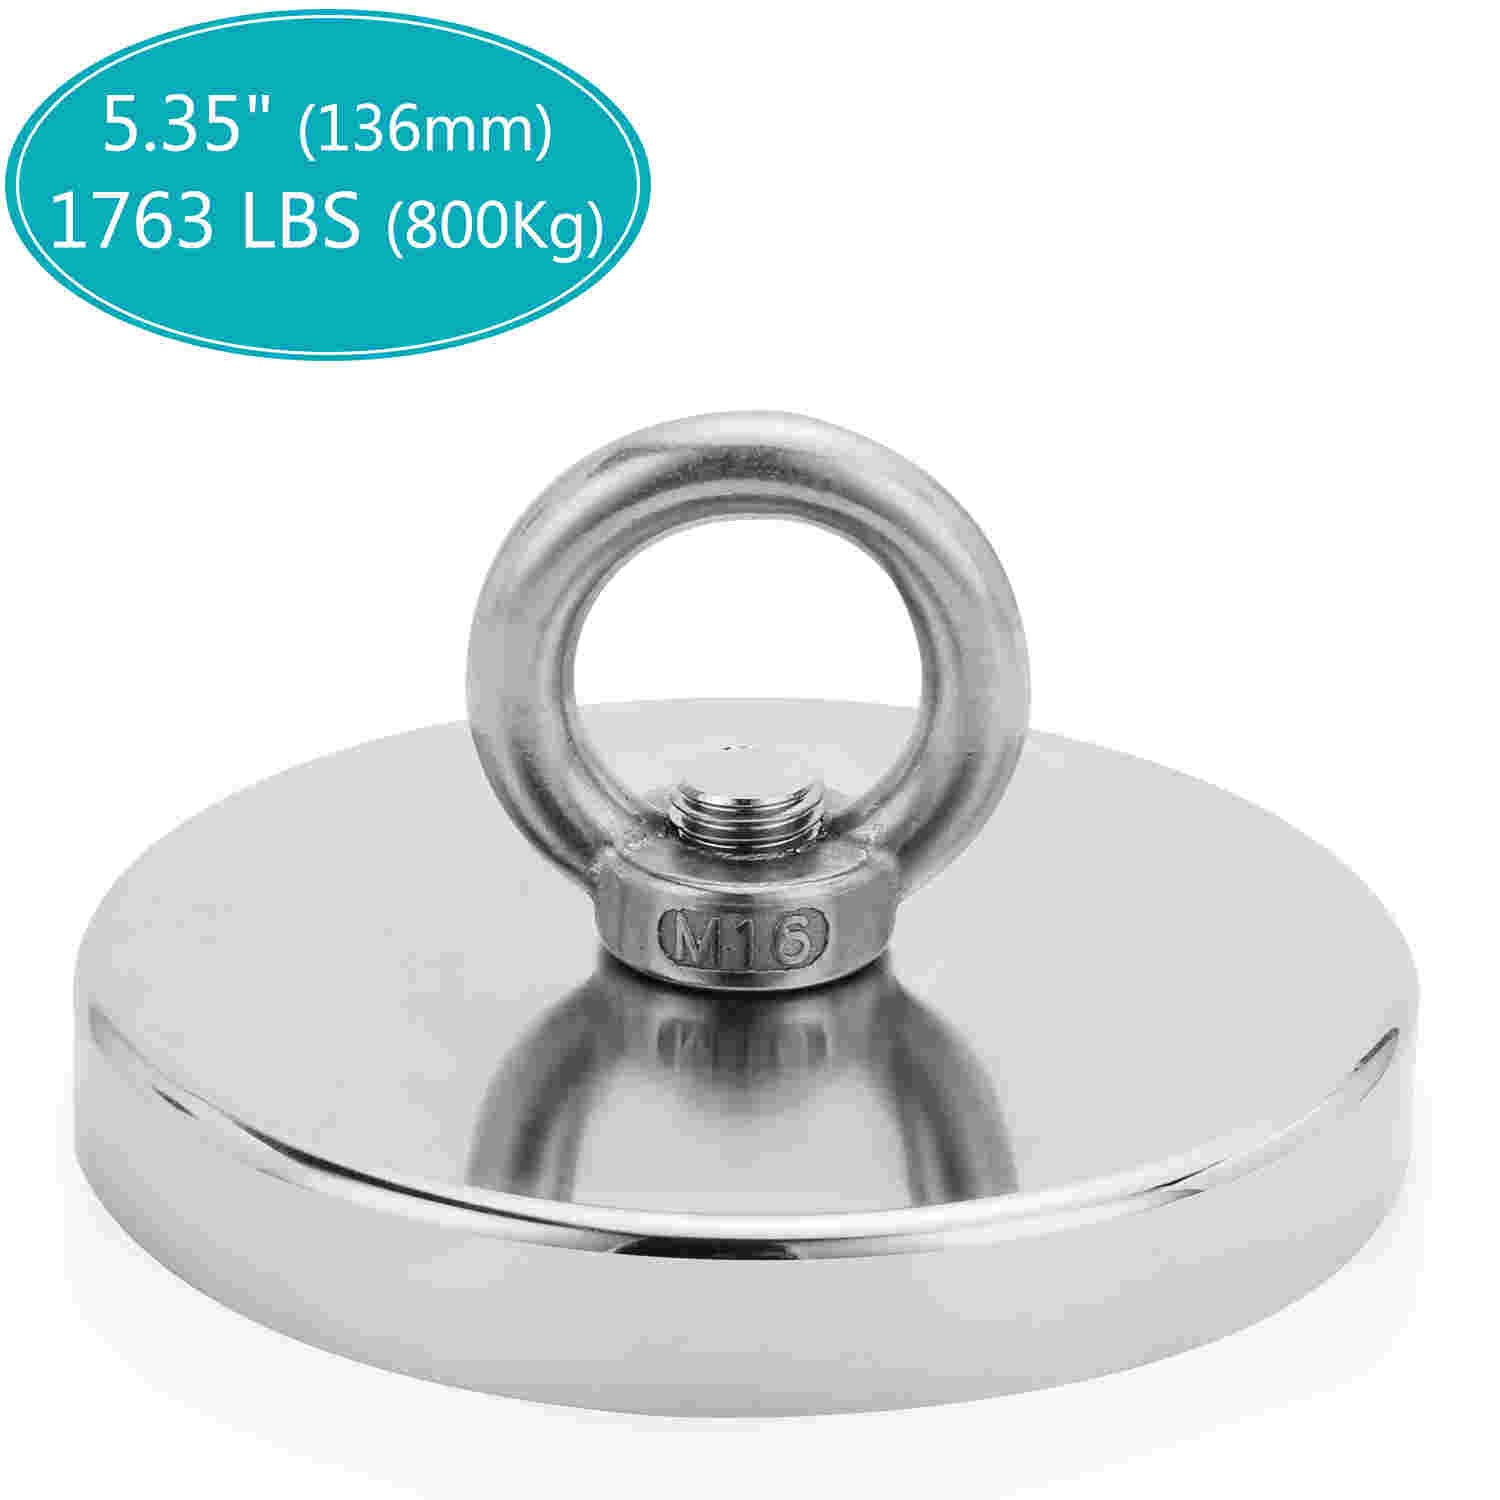 Powerful Round Neodymium Magnet With Countersunk Hole And Eyebolt Home Tools S